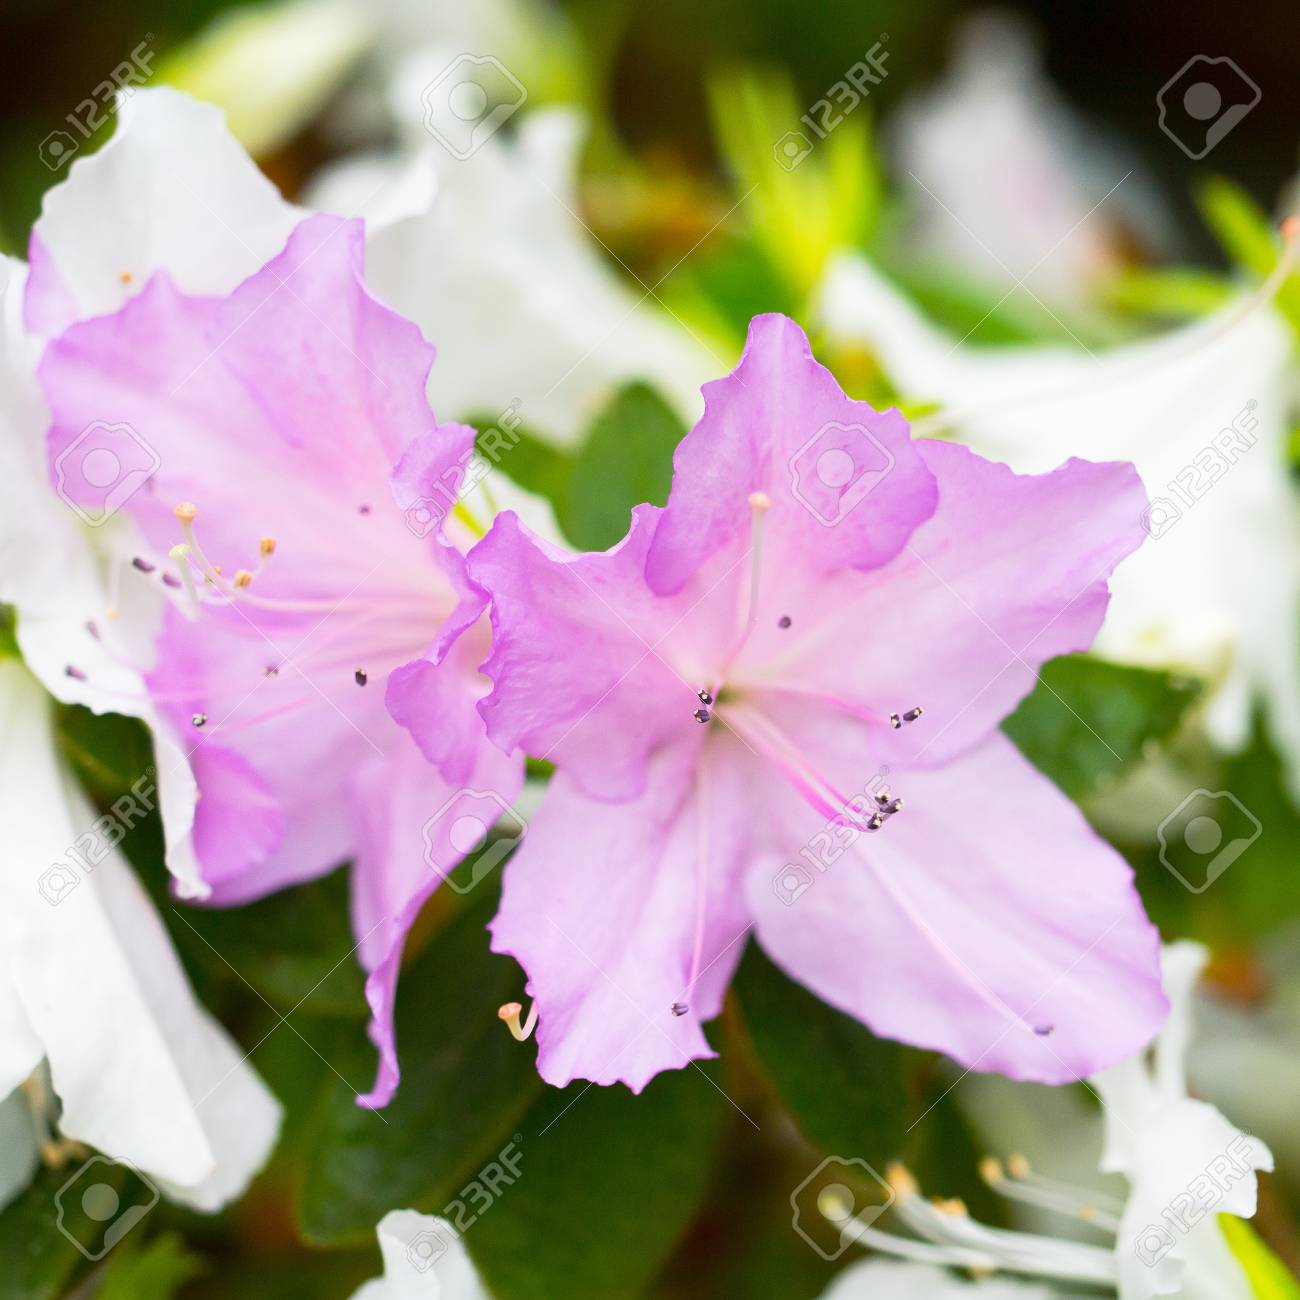 Two Delicate Lilac Flower Bud Of Rhododendron Bloom On A Branch